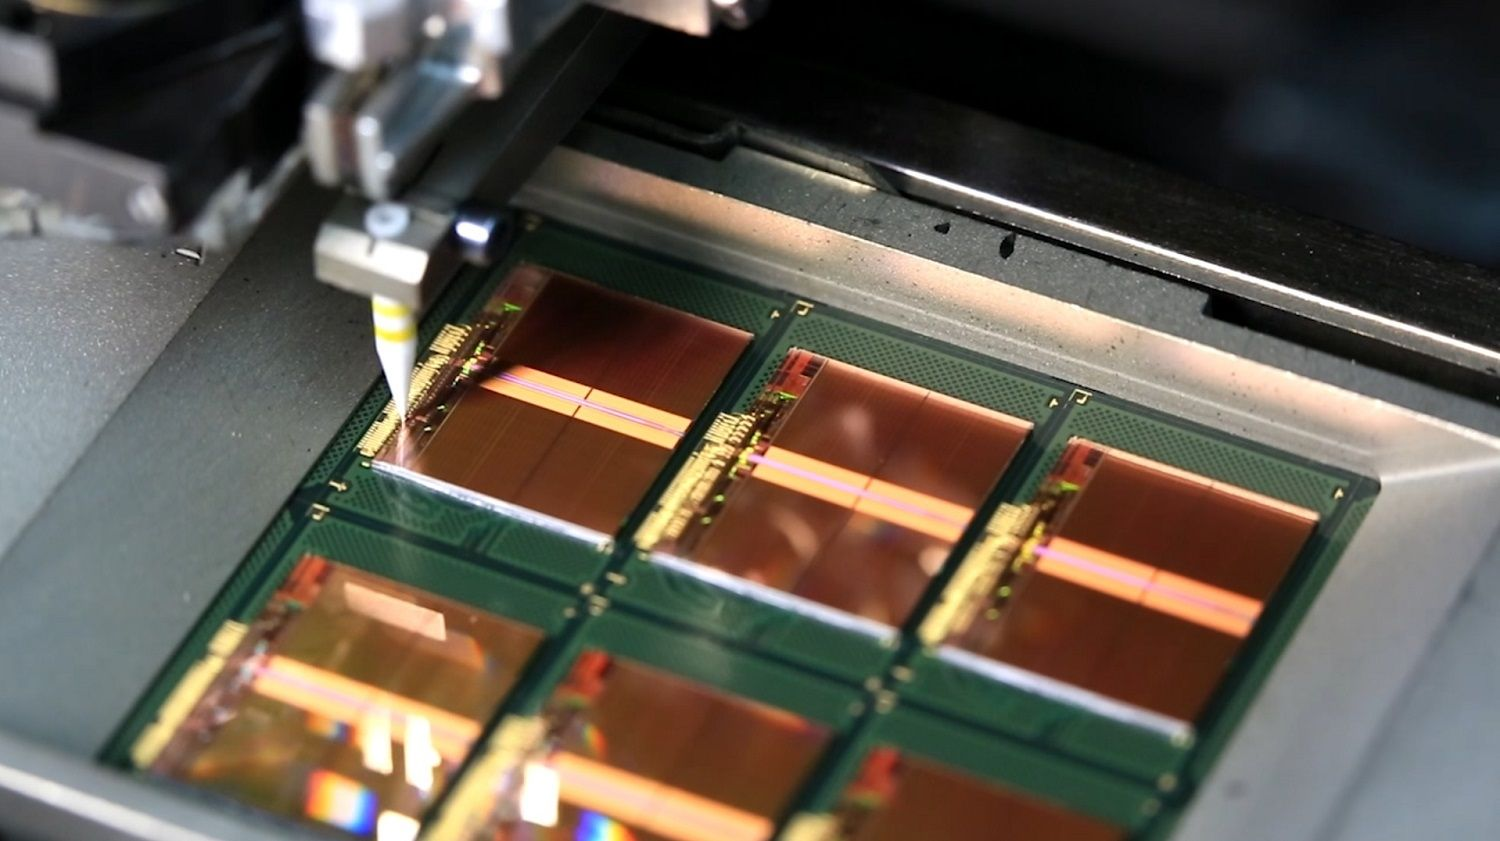 Thin gold wires connect the bonding pads on the chips to the frames as part of the memory production process